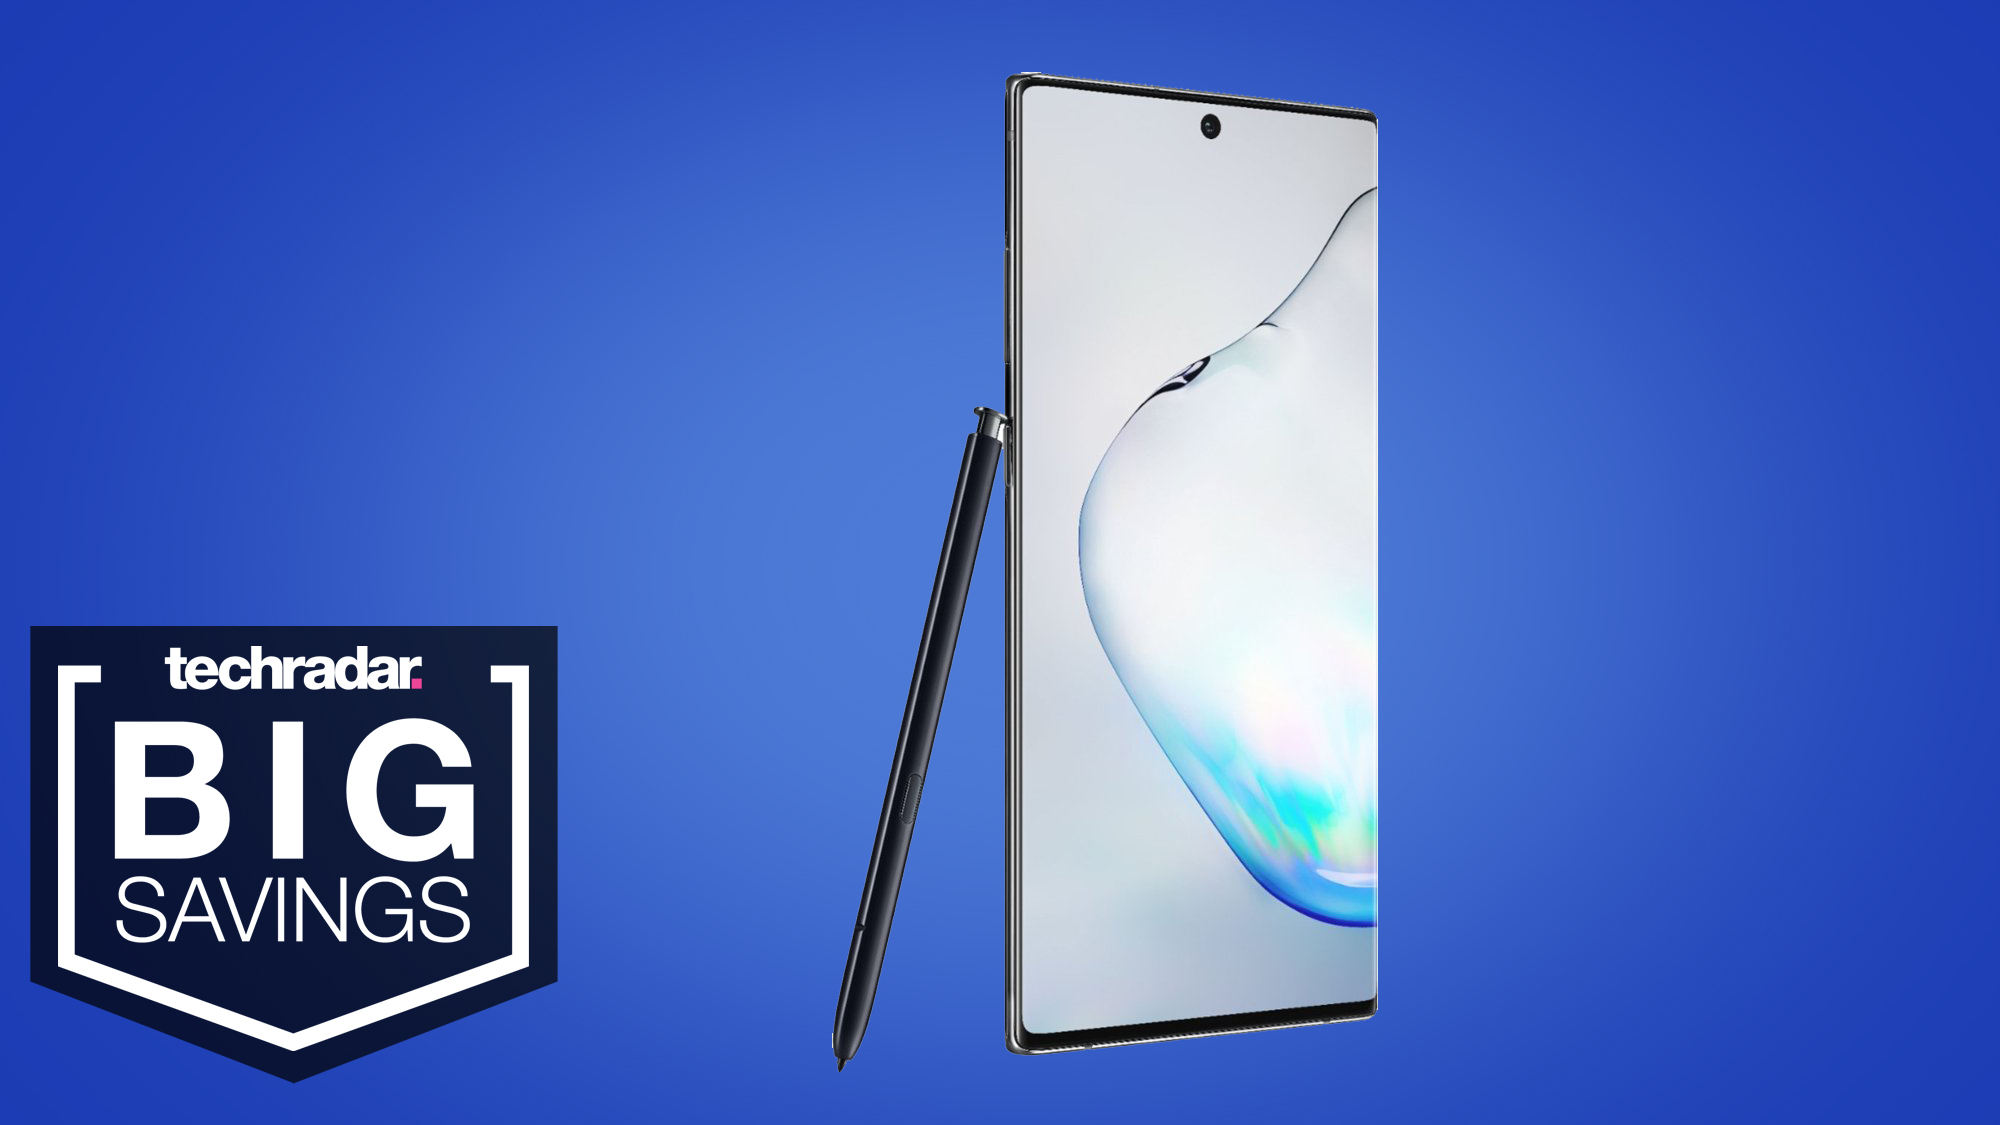 Last-minute Samsung Galaxy Note 10 Plus holiday deals save up to $300